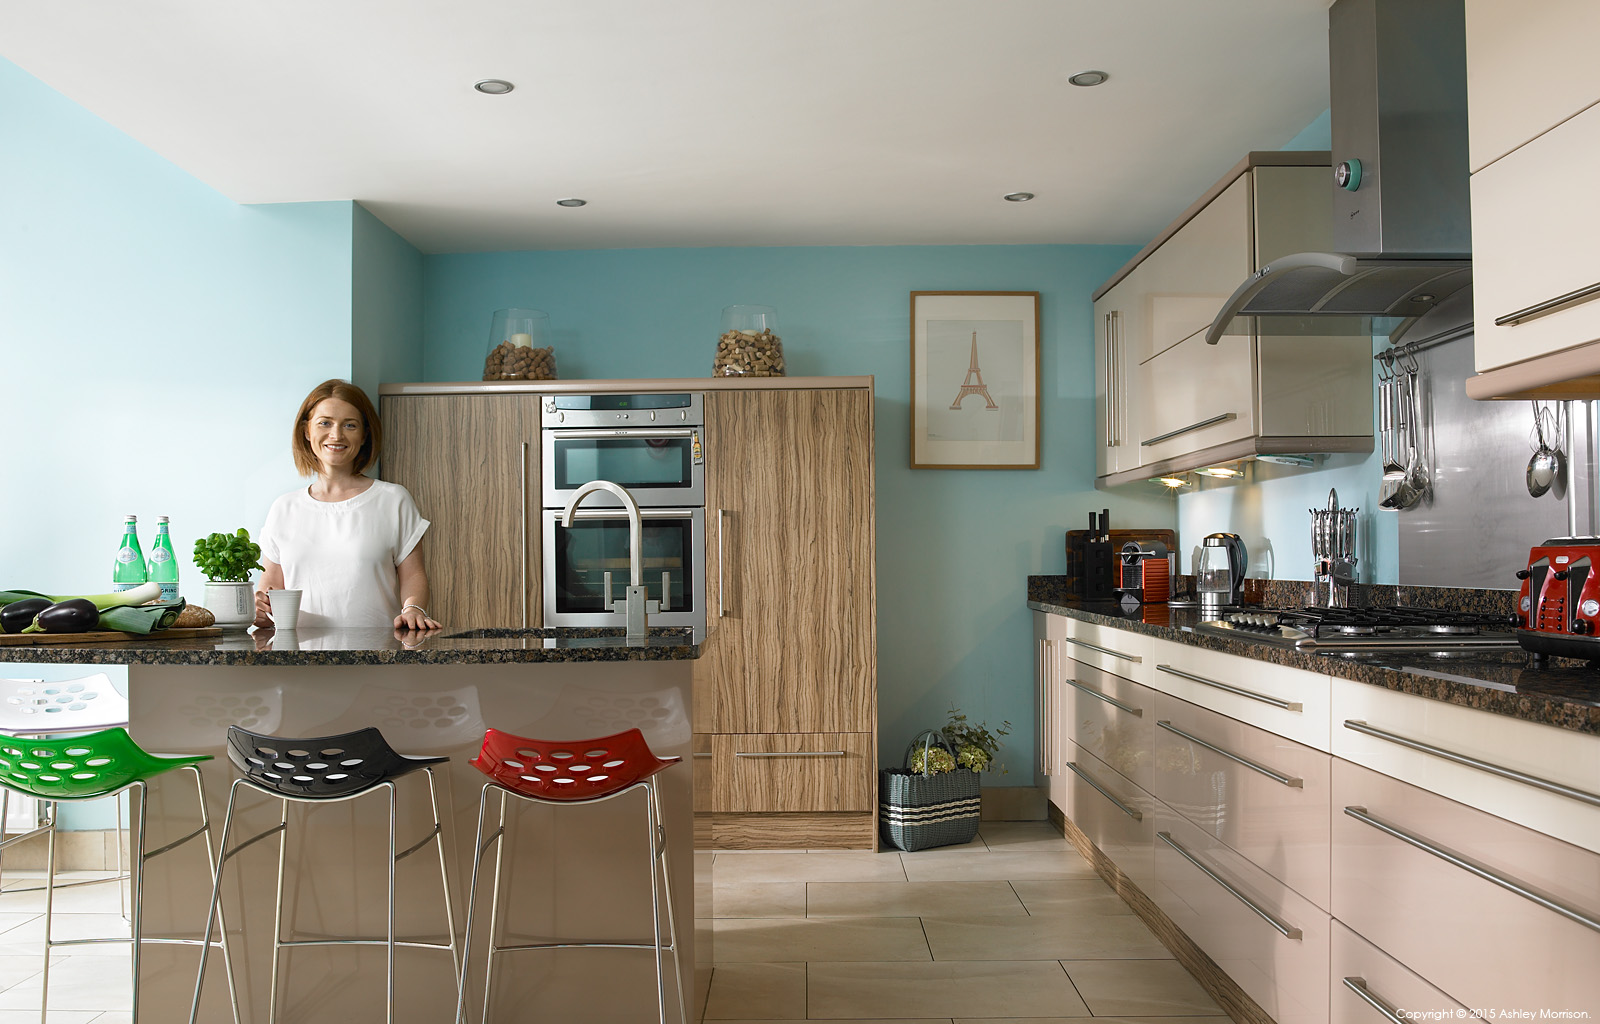 Lisa McCann in the kitchen of her detached house located in the Rosetta area of Belfast